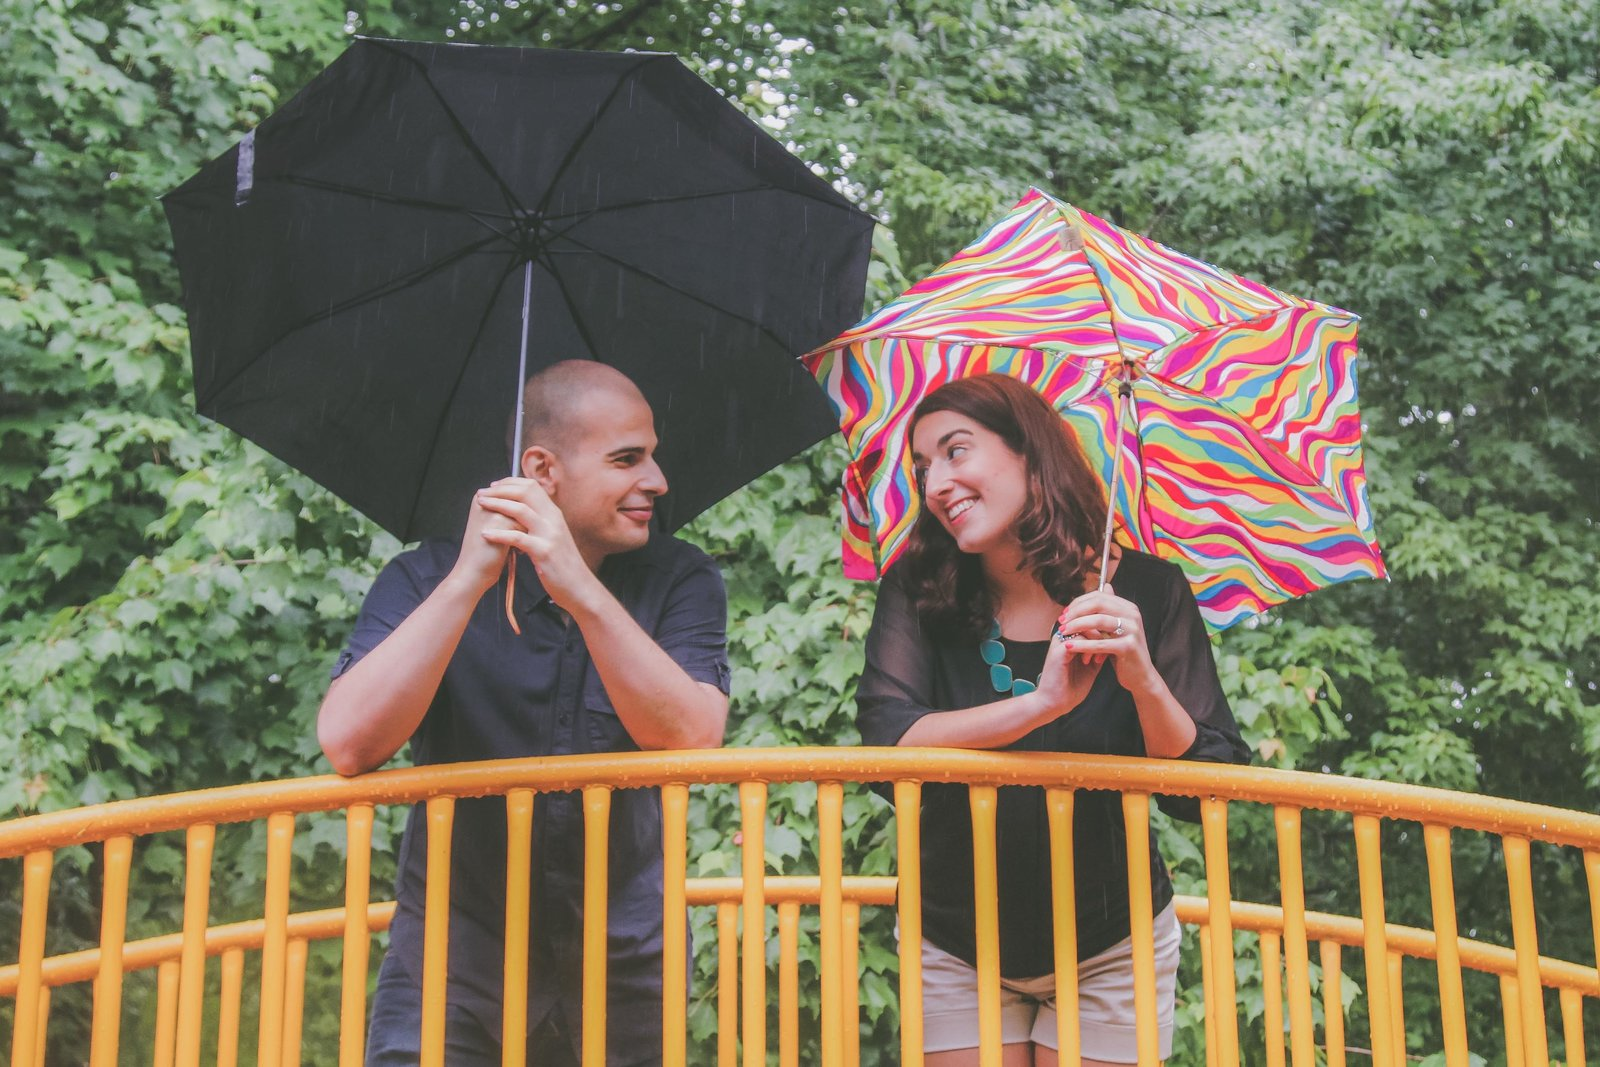 California couple holds umbrellas and look at each other during rain.